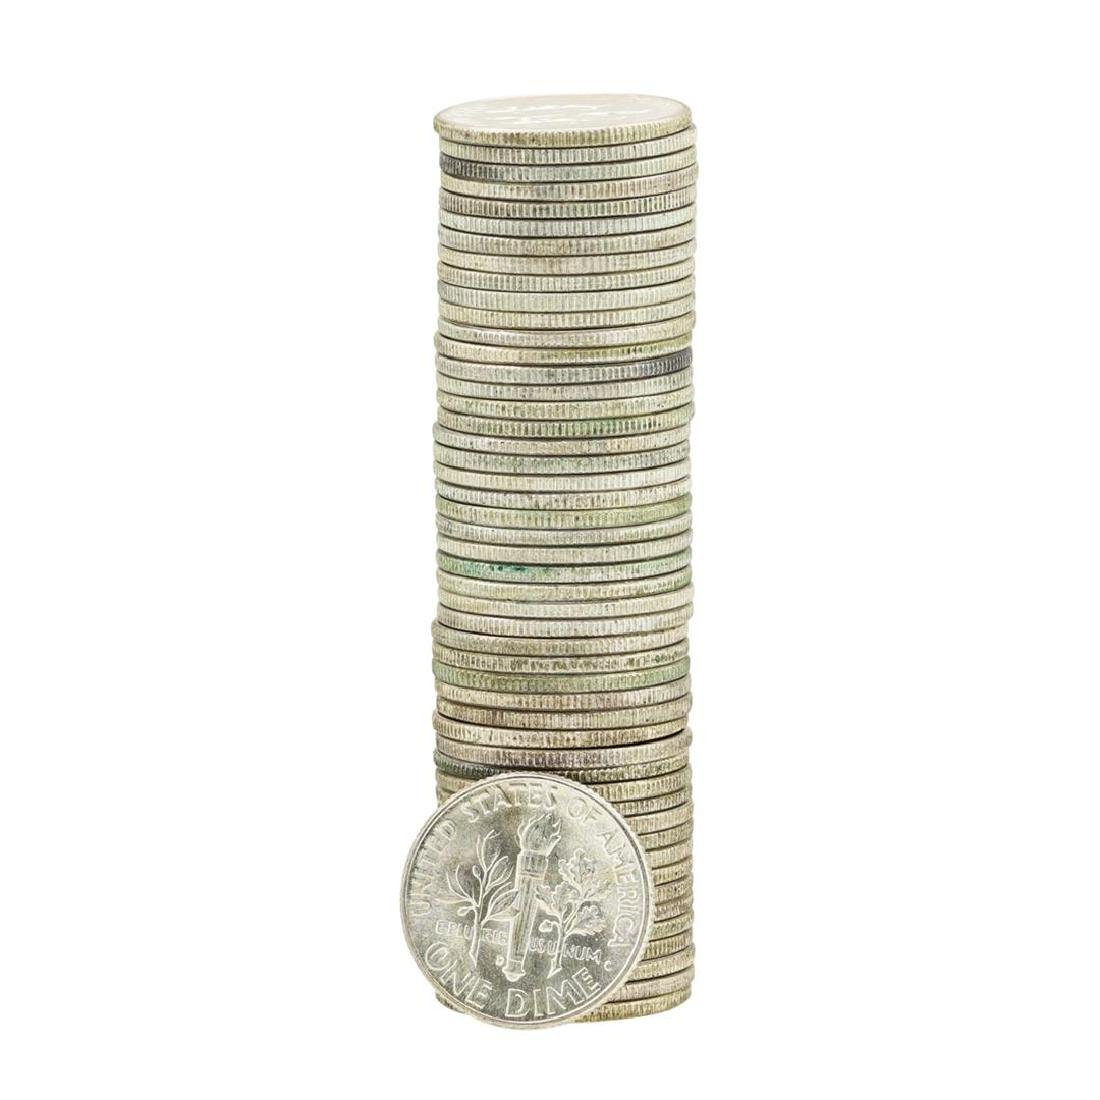 Roll of (50) 1946 Brilliant Uncirculated Roosevelt - 2